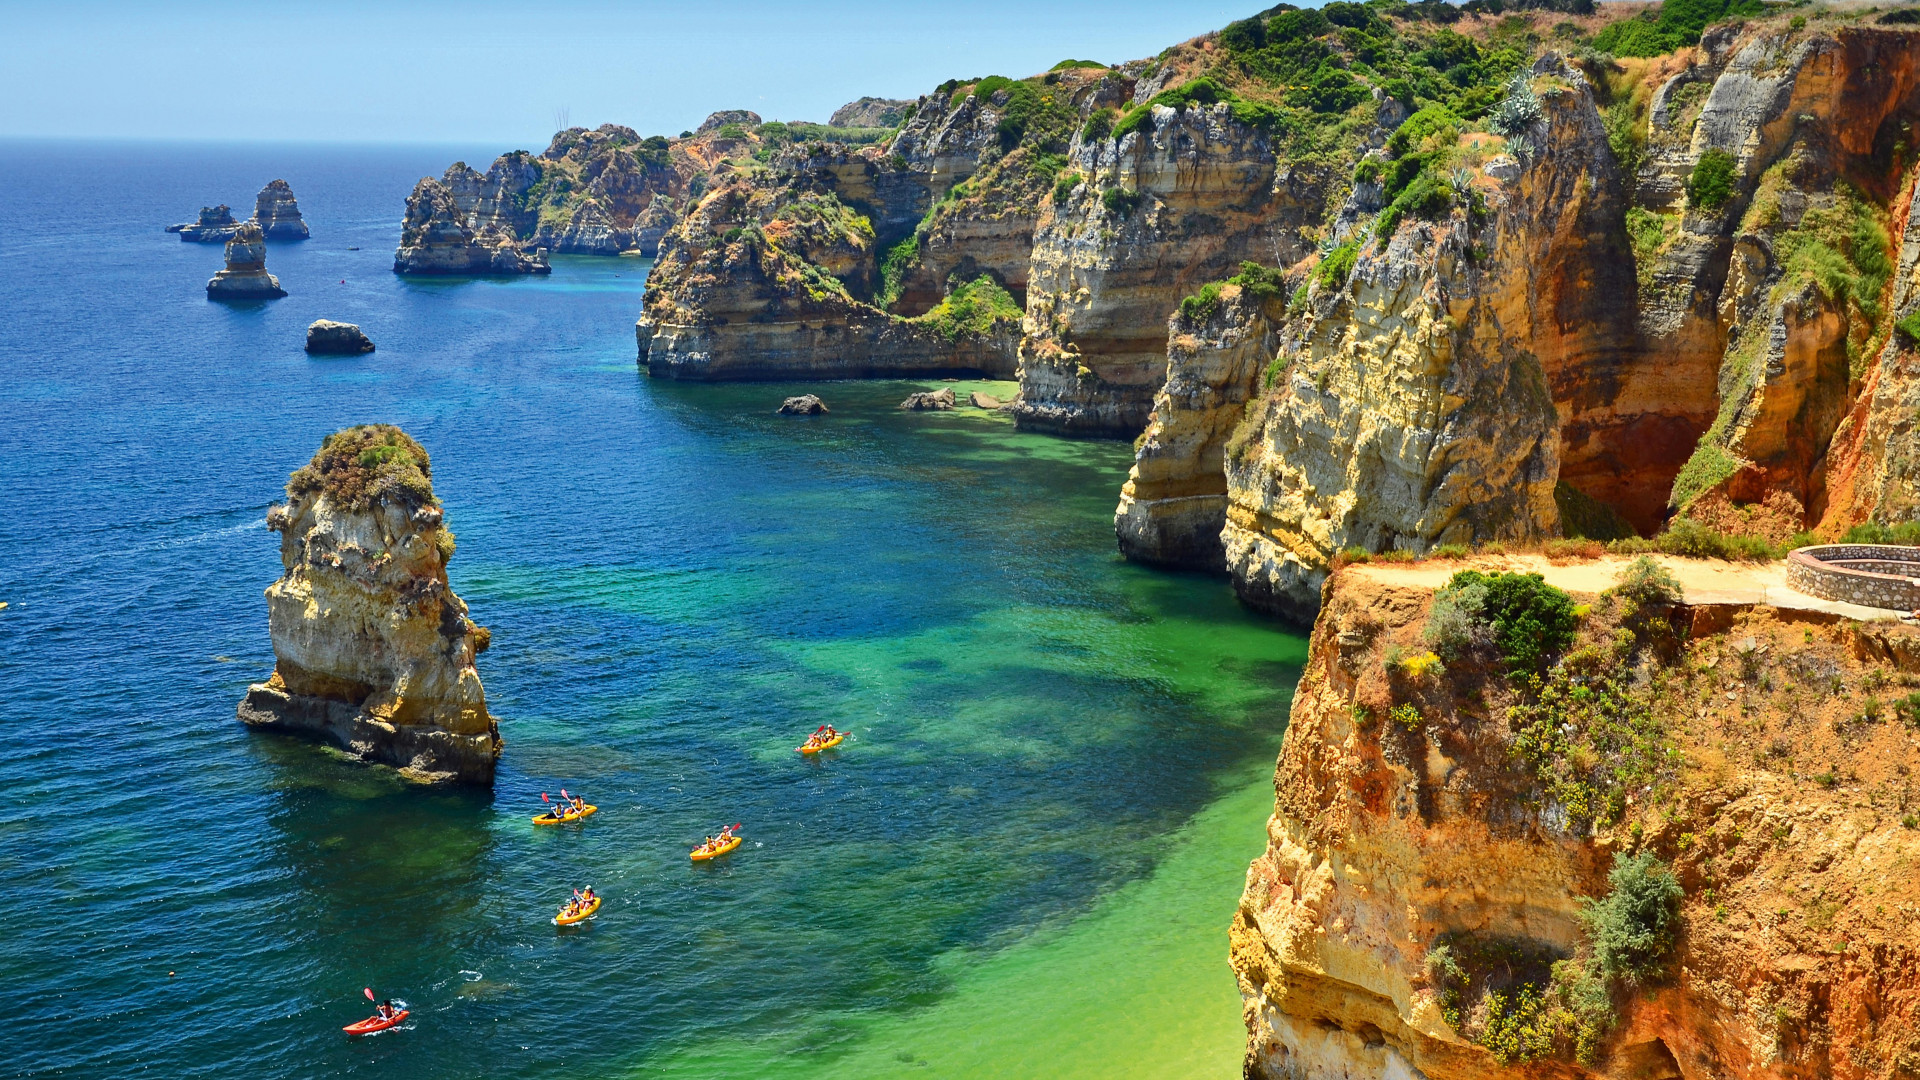 Kayaks and coastline in the Algarve